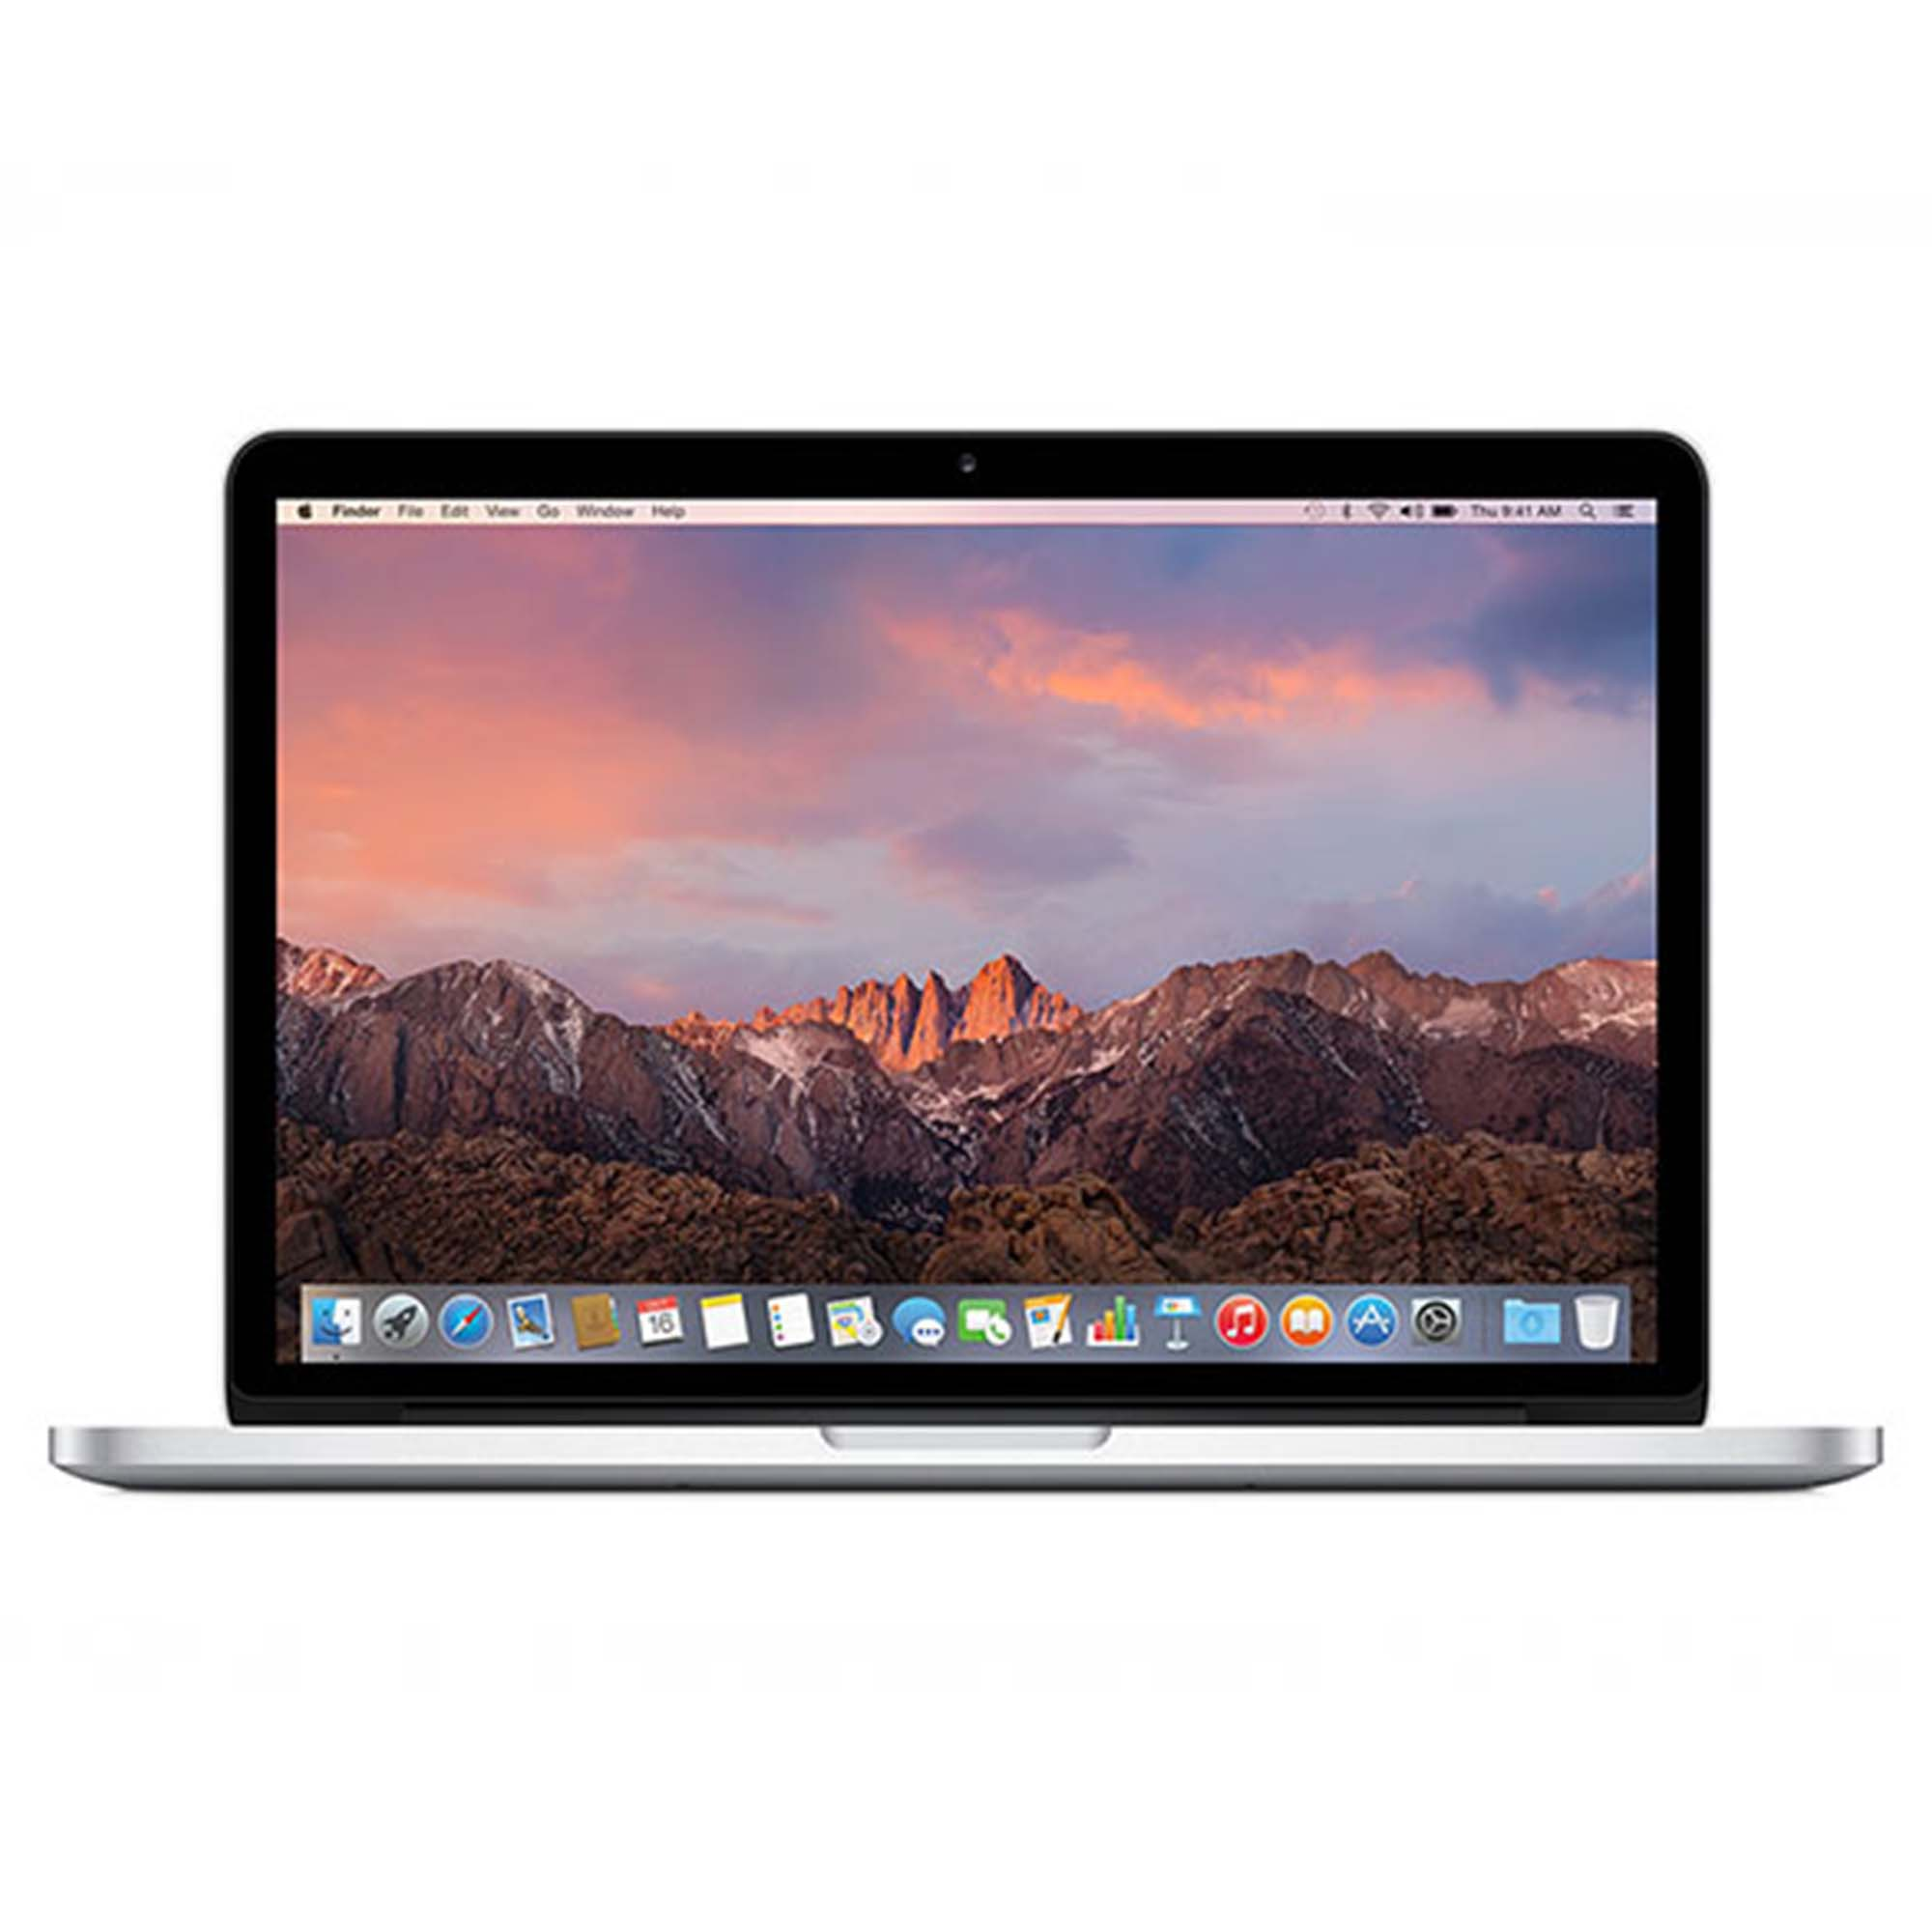 "Apple MacBook Pro 15"" Core i7 2.8GHz Retina (MGXG2LL A), 16GB RAM, 1TB Solid State Drive Refurbished by Apple"